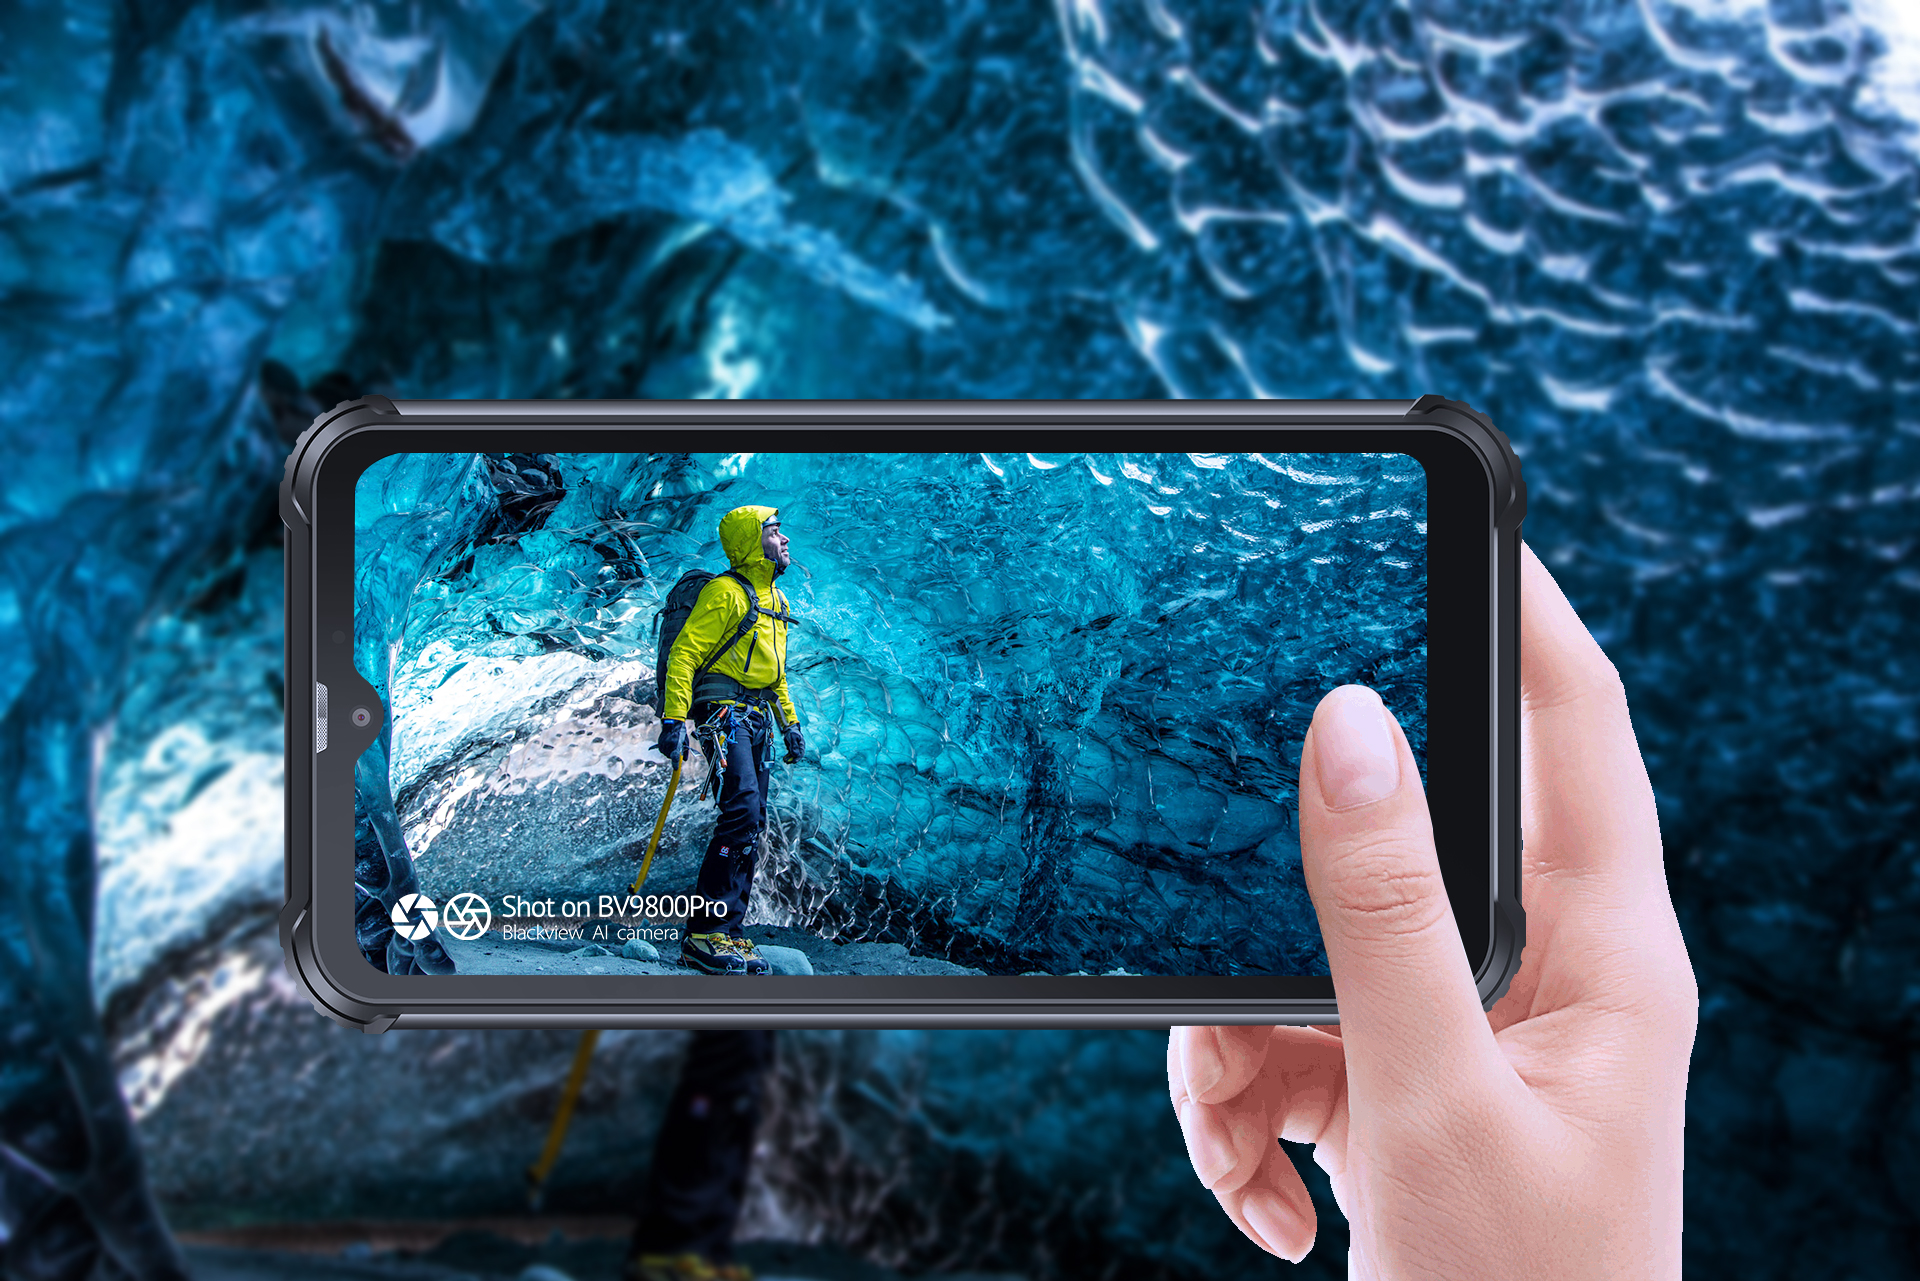 The Blackview BV9800 Pro is the world's first rugged phone with a 48MP camera and thermal camera 2